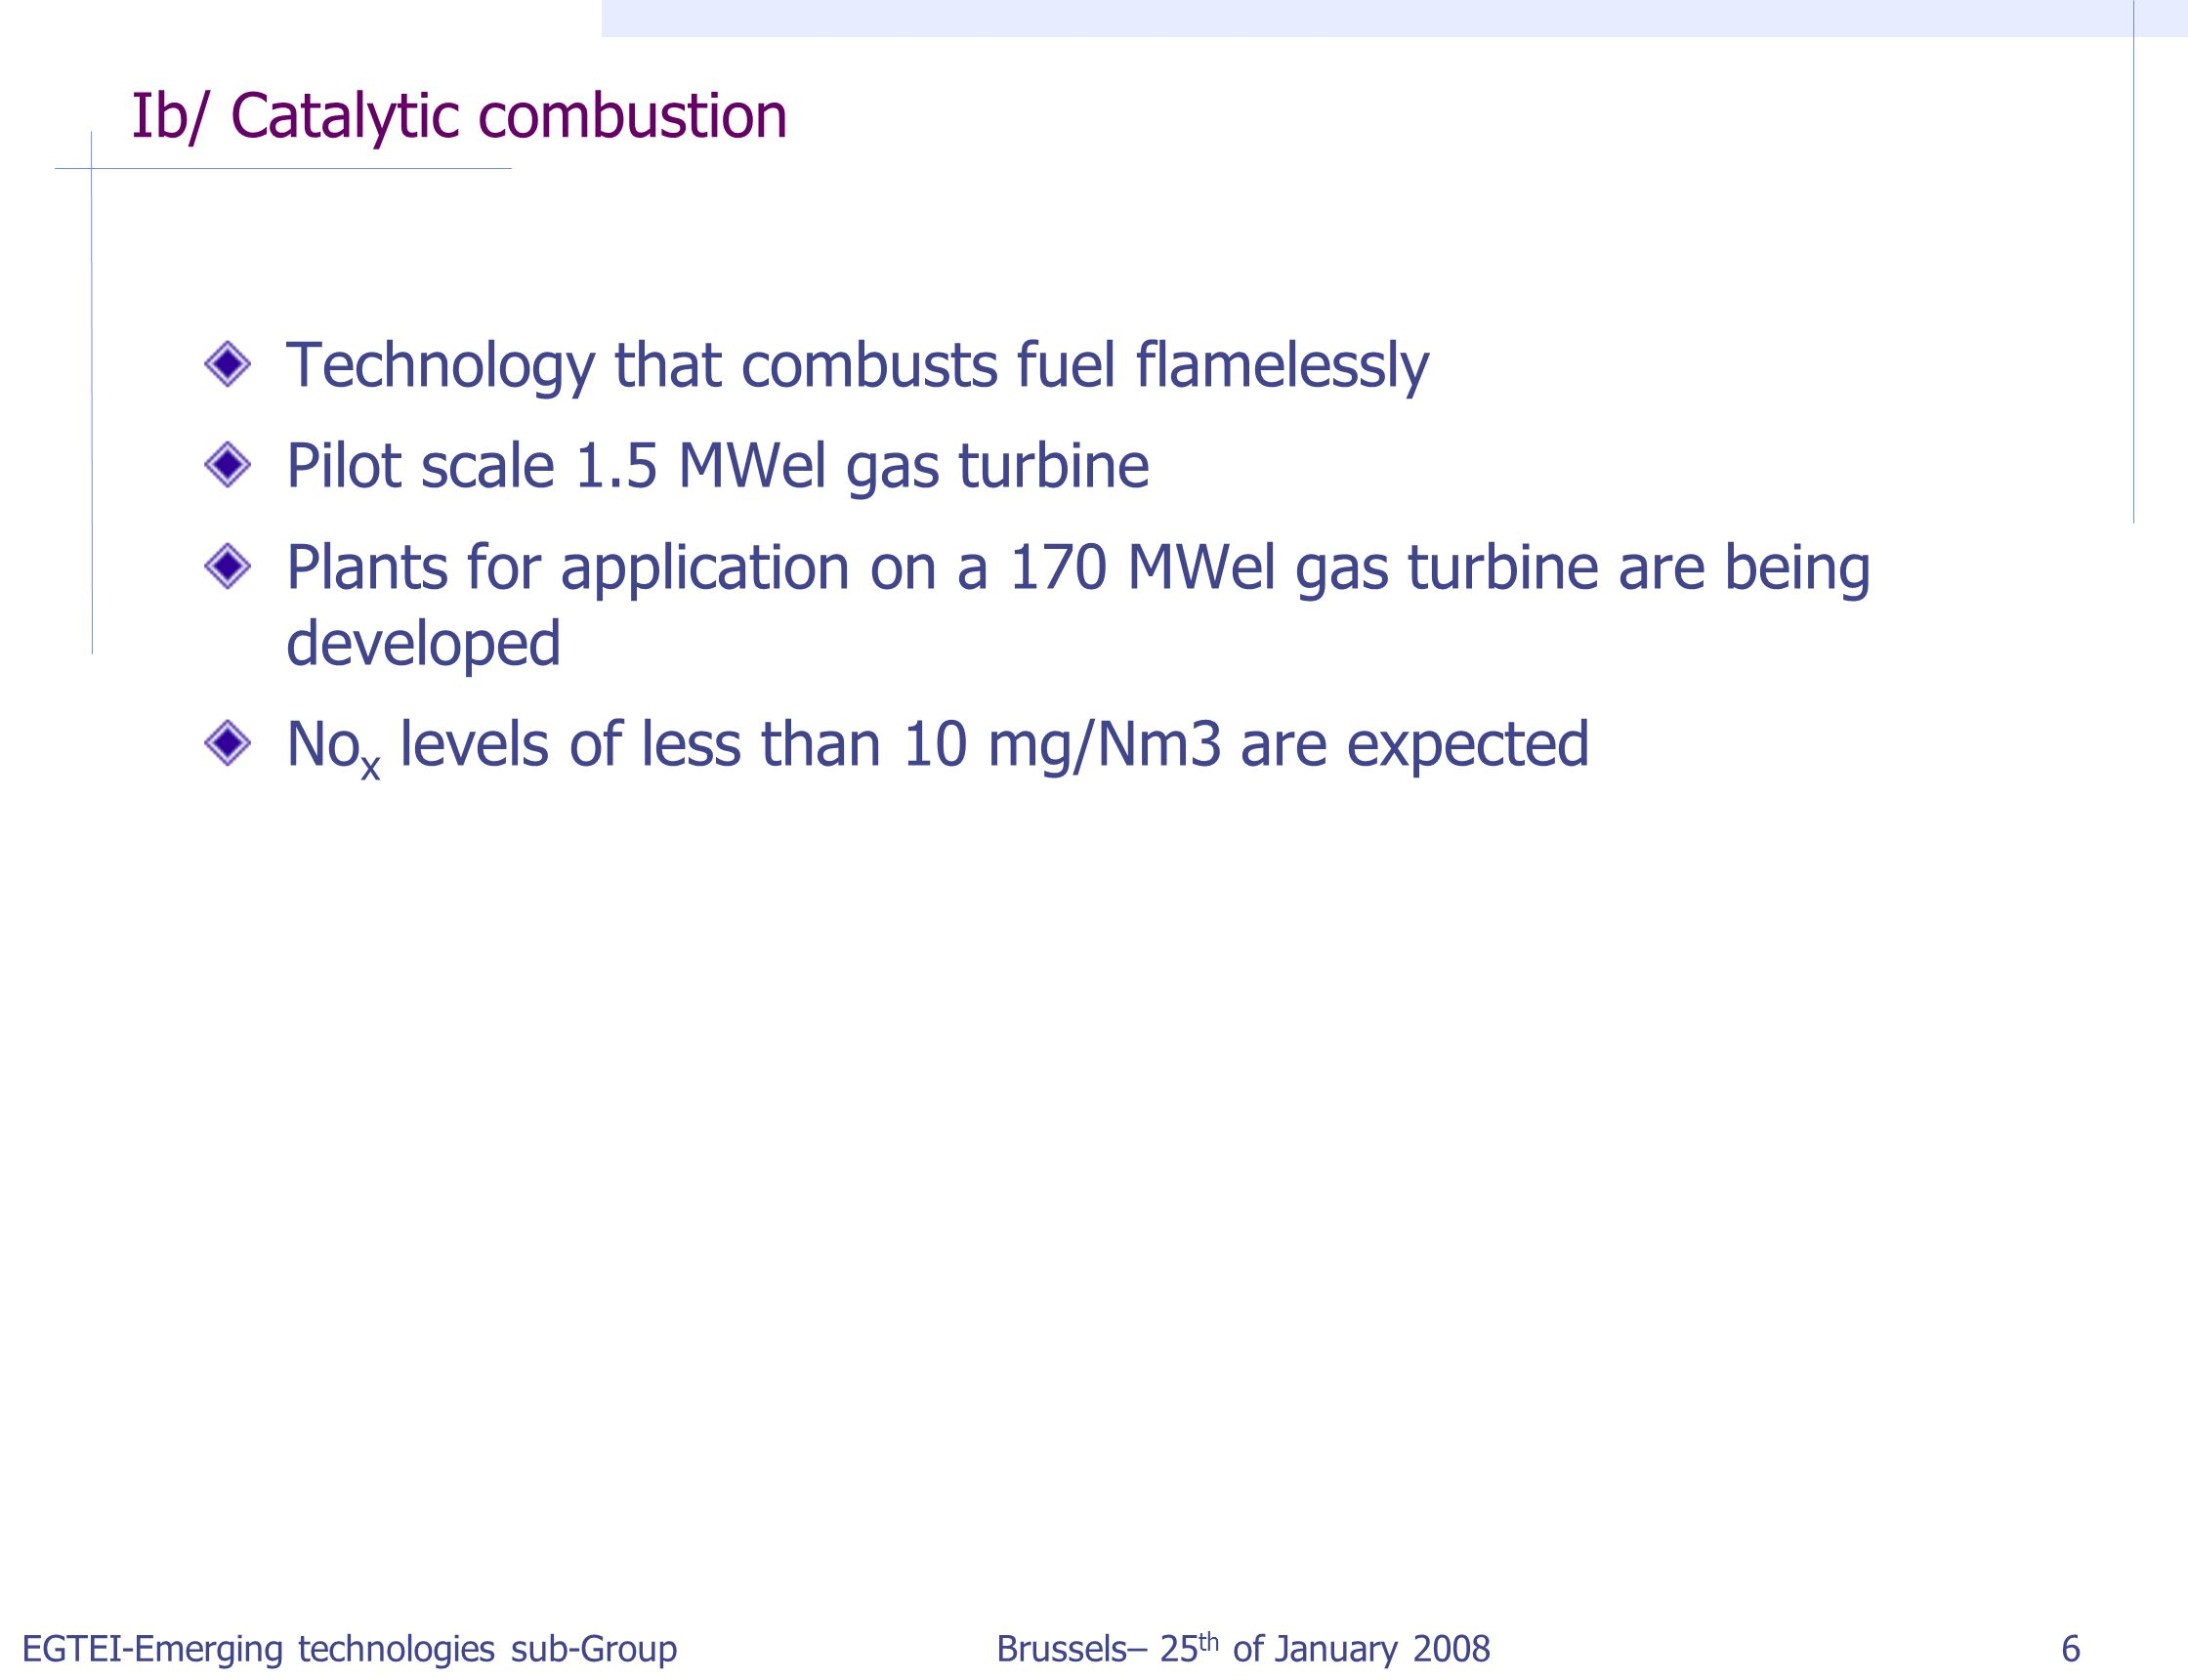 EGTEI-Emerging technologies sub-Group Brussels– 25 th of January 2008 7 Ib/ Catalytic combustion